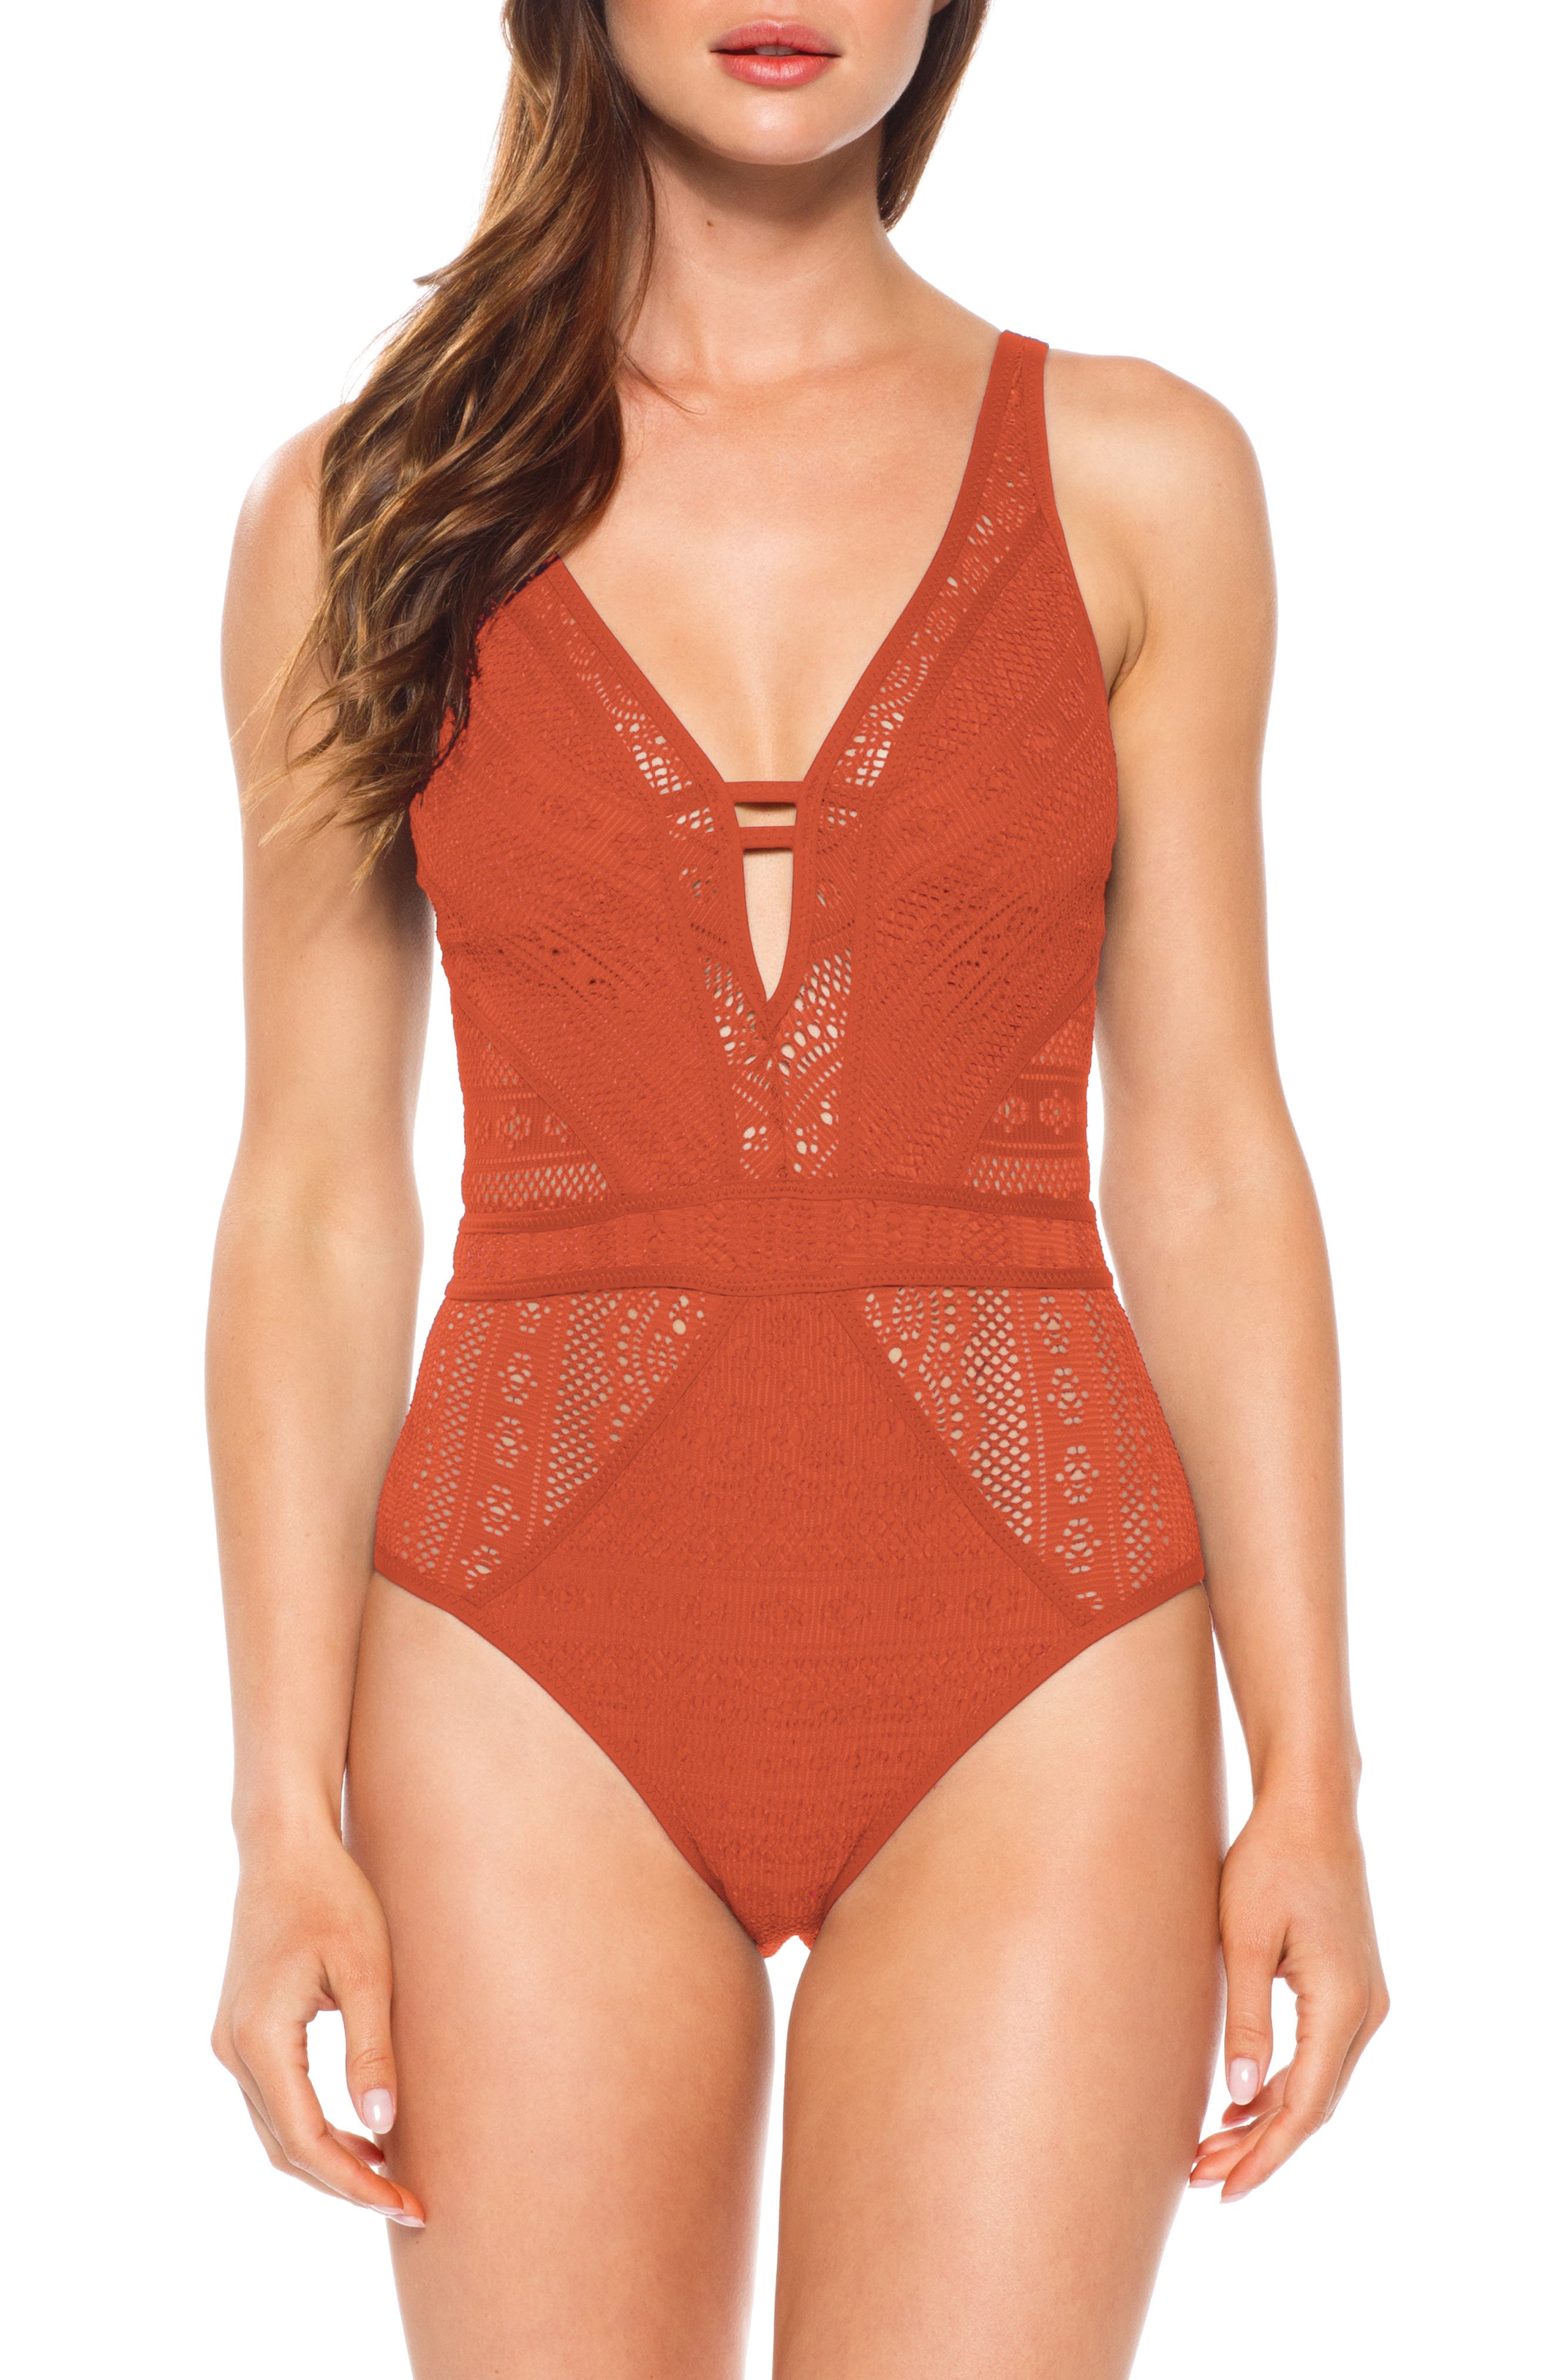 Becca Show & Tell One-Piece Swimsuit, Brown